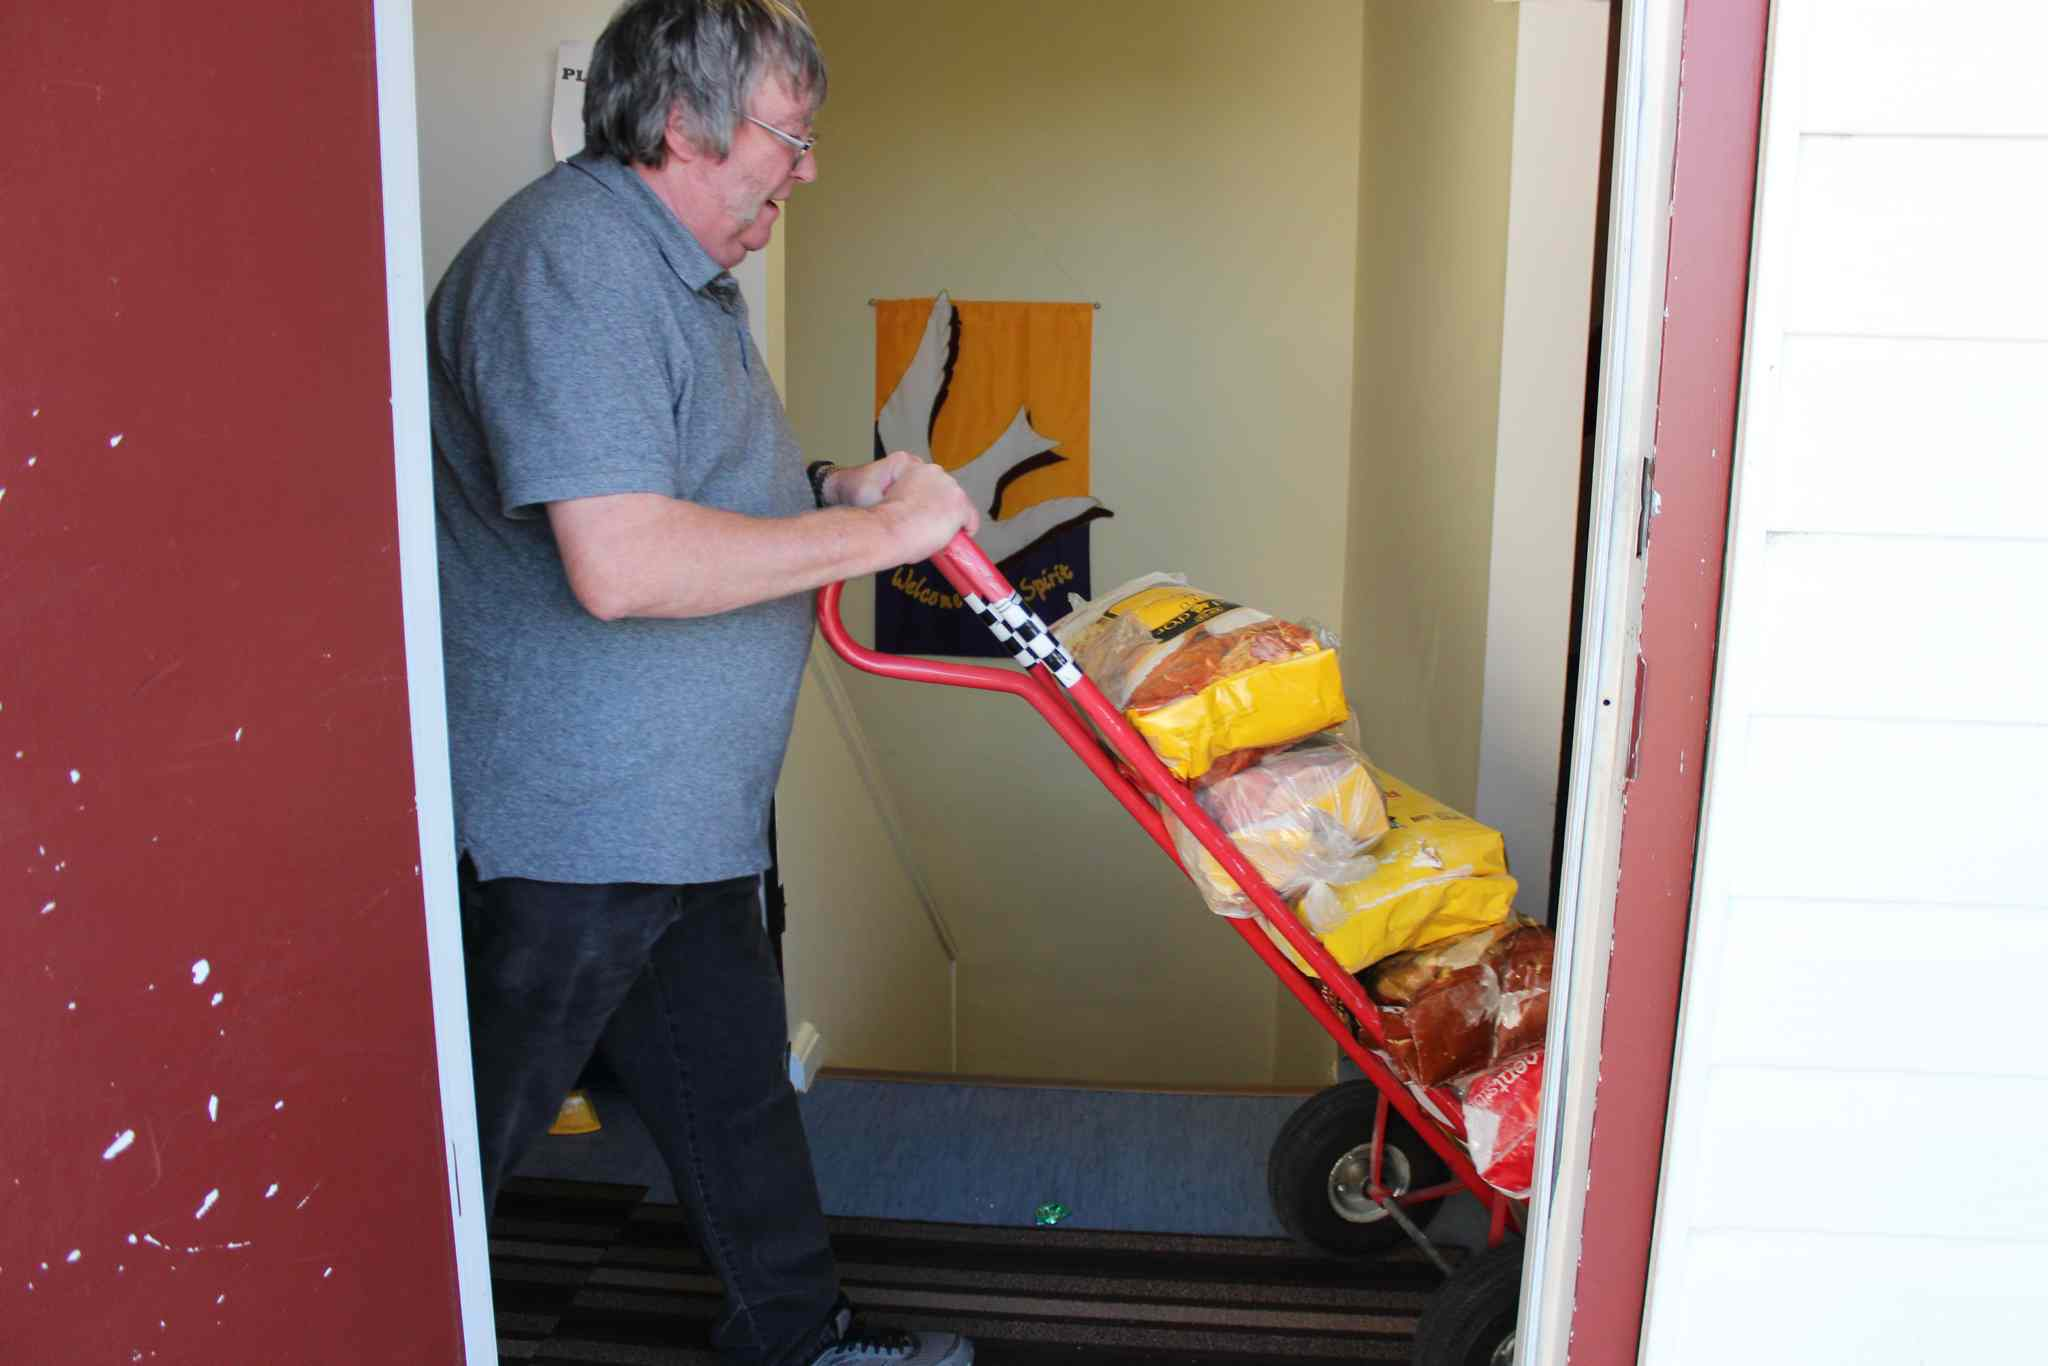 Volunteer Norman Allen wheels a dolly full of flour into the Salvation Army food bank in Thompson.